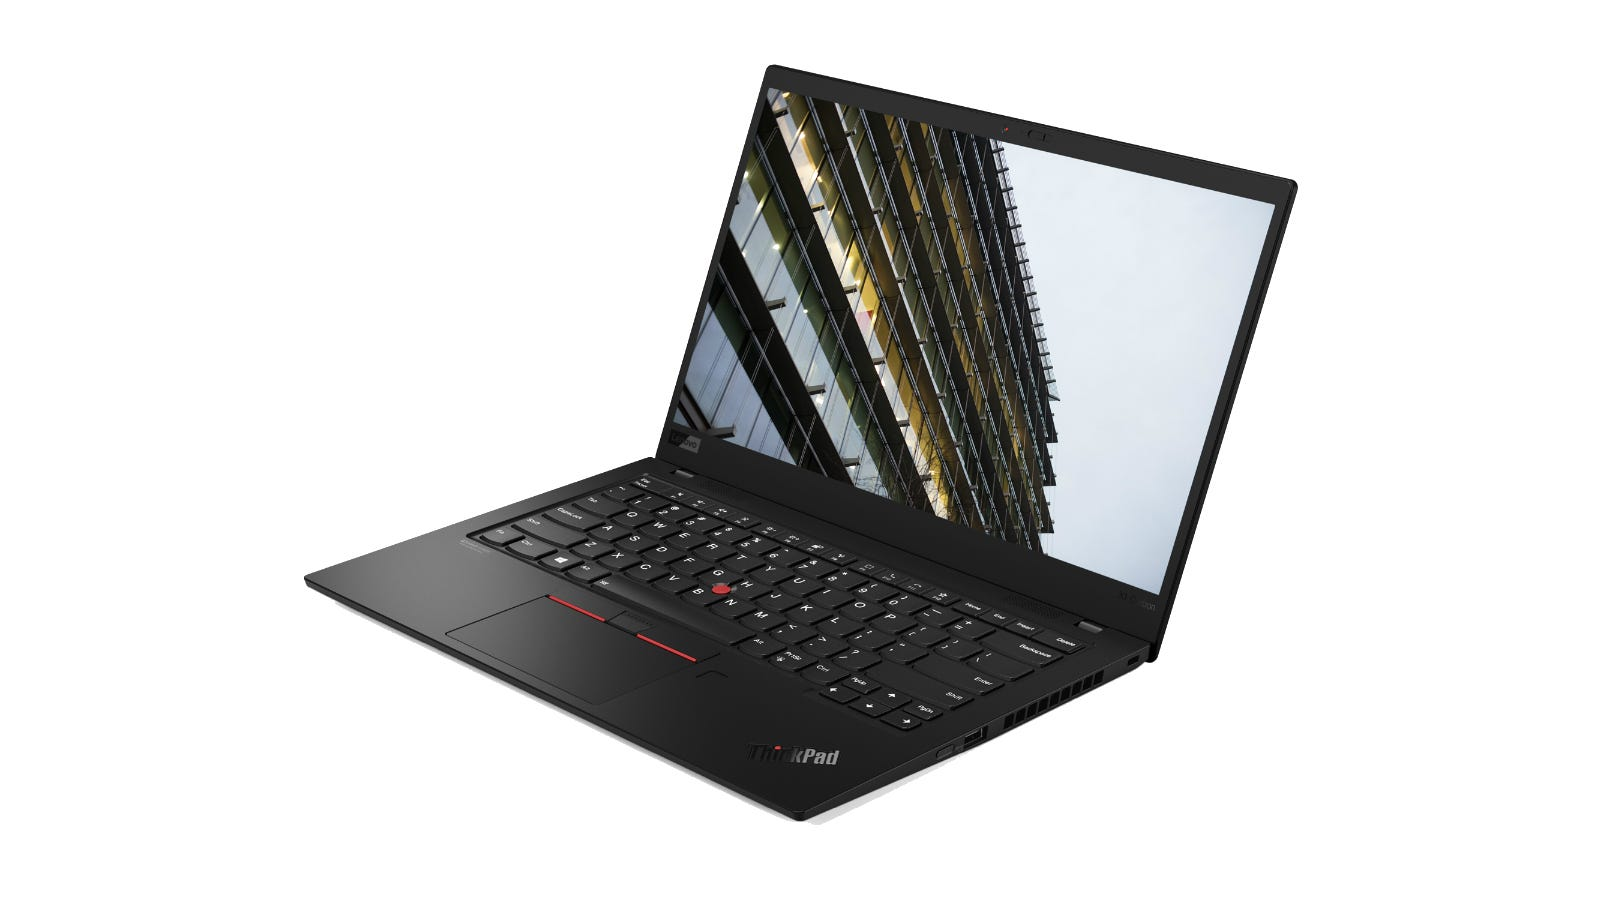 Lenovo ThinkPad X1 Carbon 8th Generation from the side